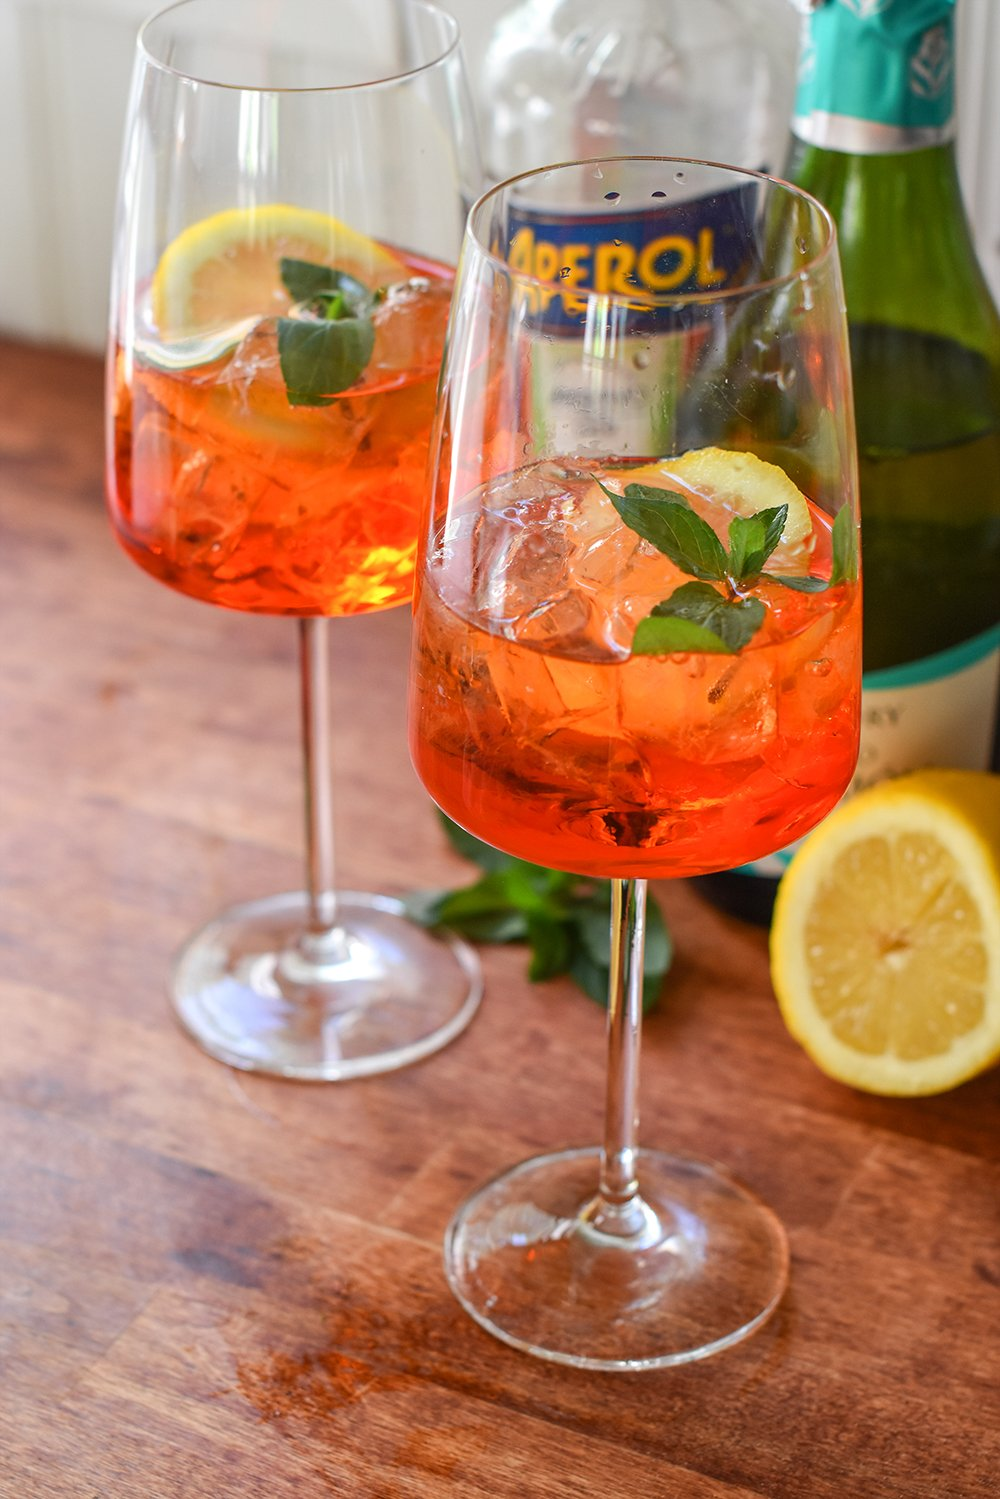 An easy Aperol wine spritzer garnished with fresh lemon and mint sprigs.